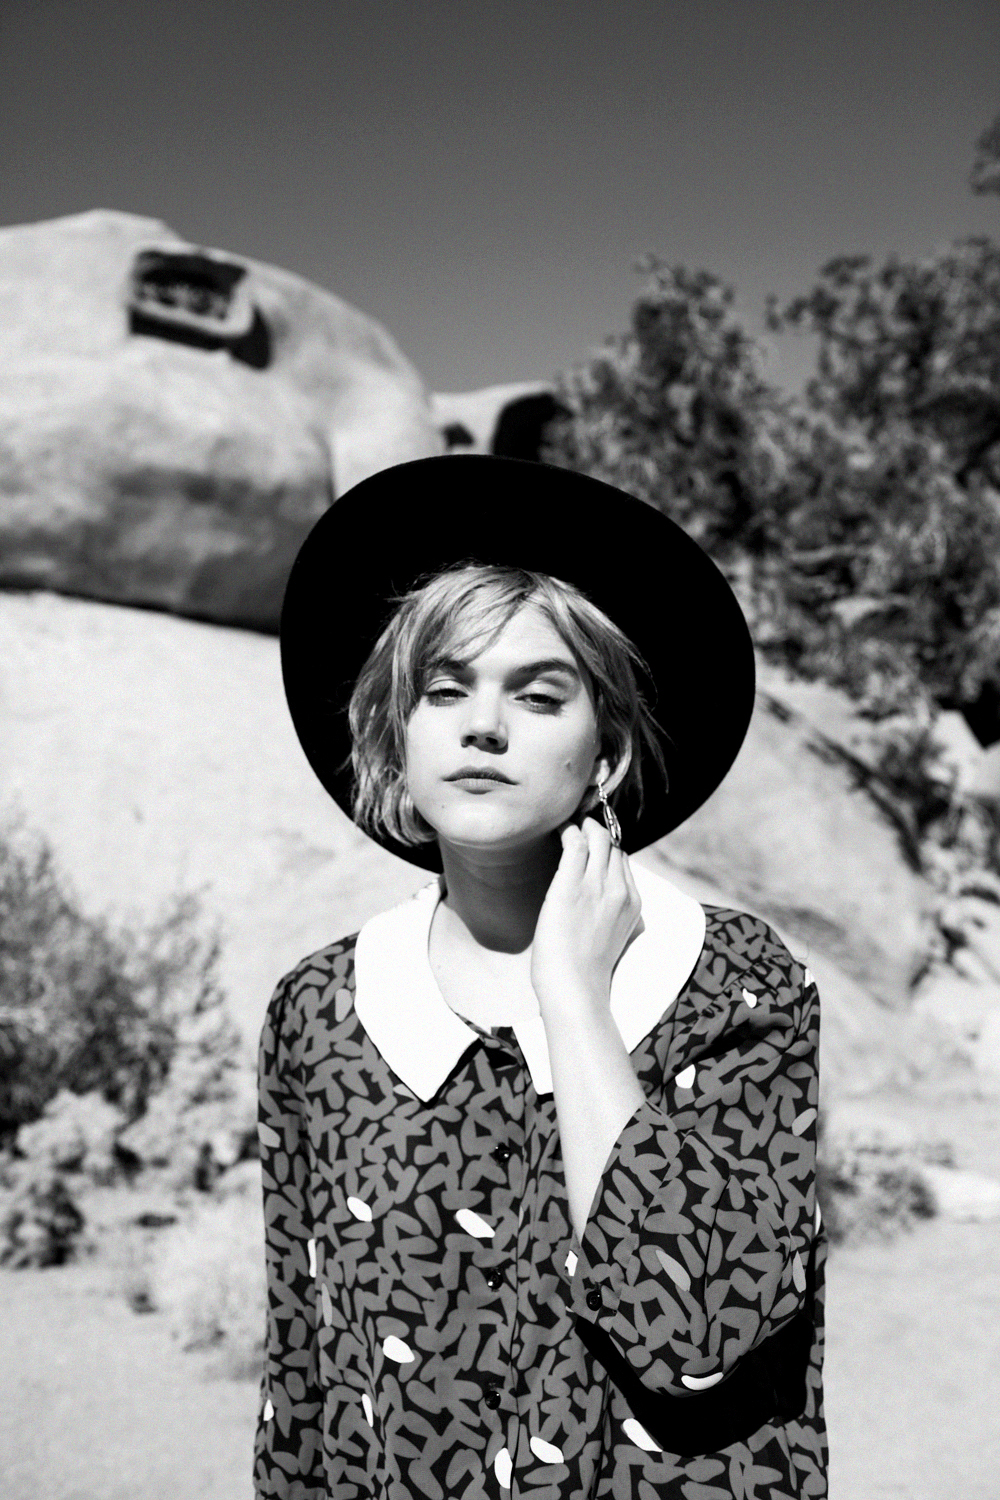 shot in Joshua Tree